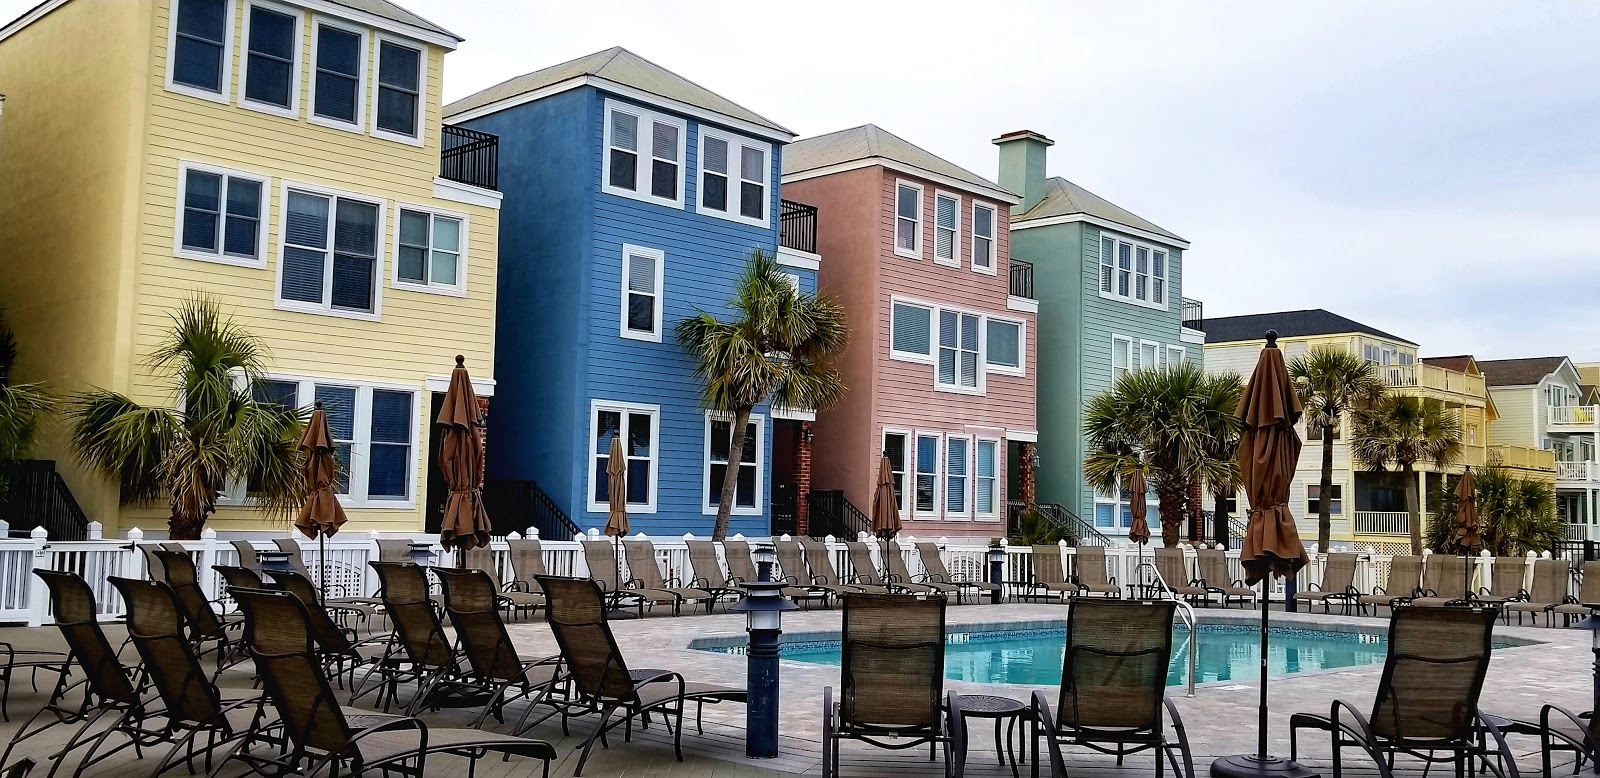 Wild Dunes Resort in Isle of Palms in South Carolina